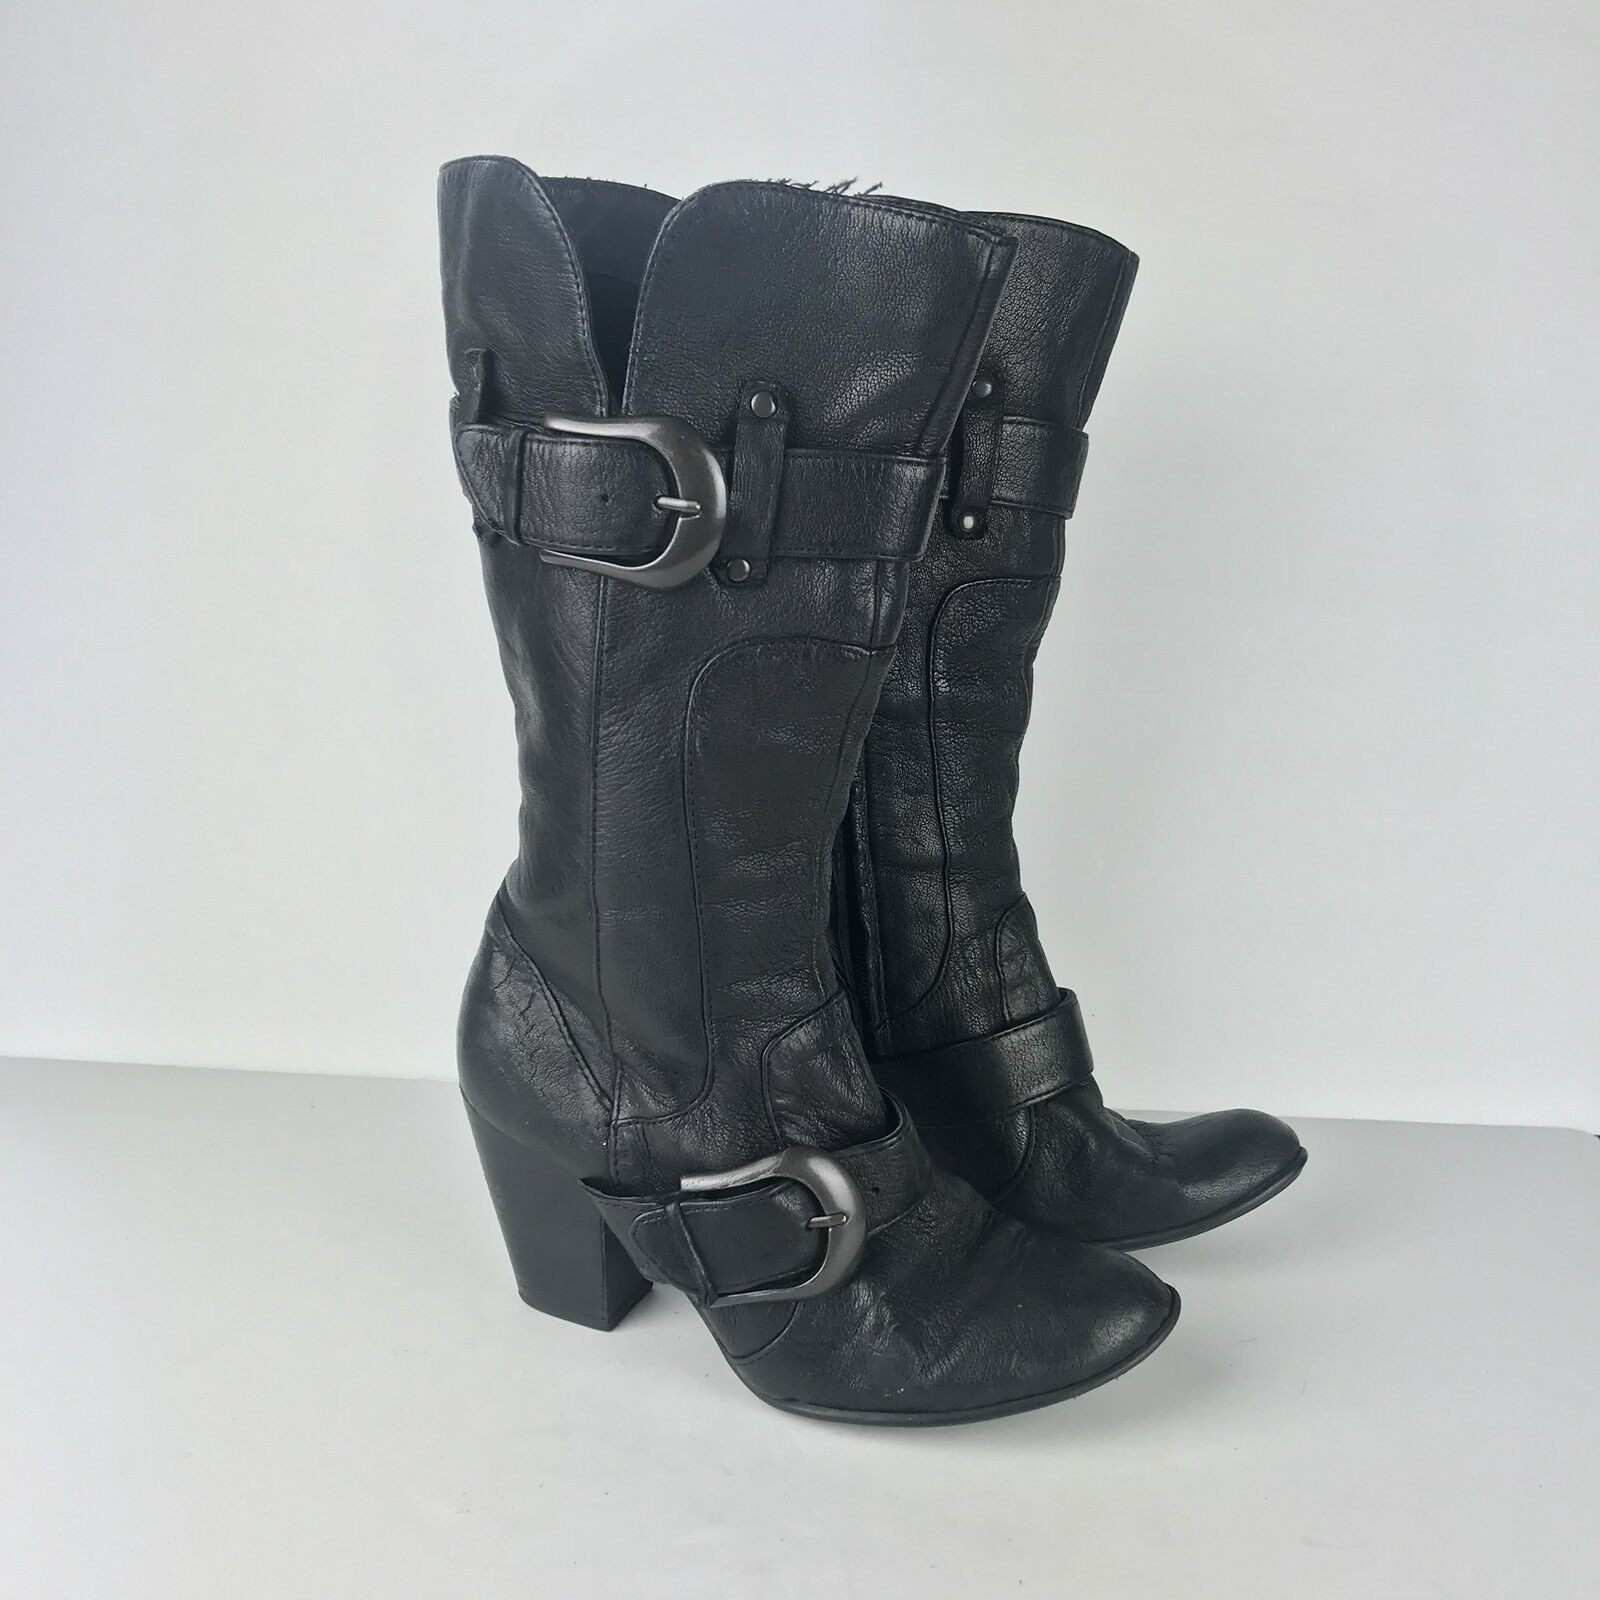 "Born 7 38 Black Boot Tall Leather Buckle Heel Career Casual Side Zip 2 3/4"" Size"